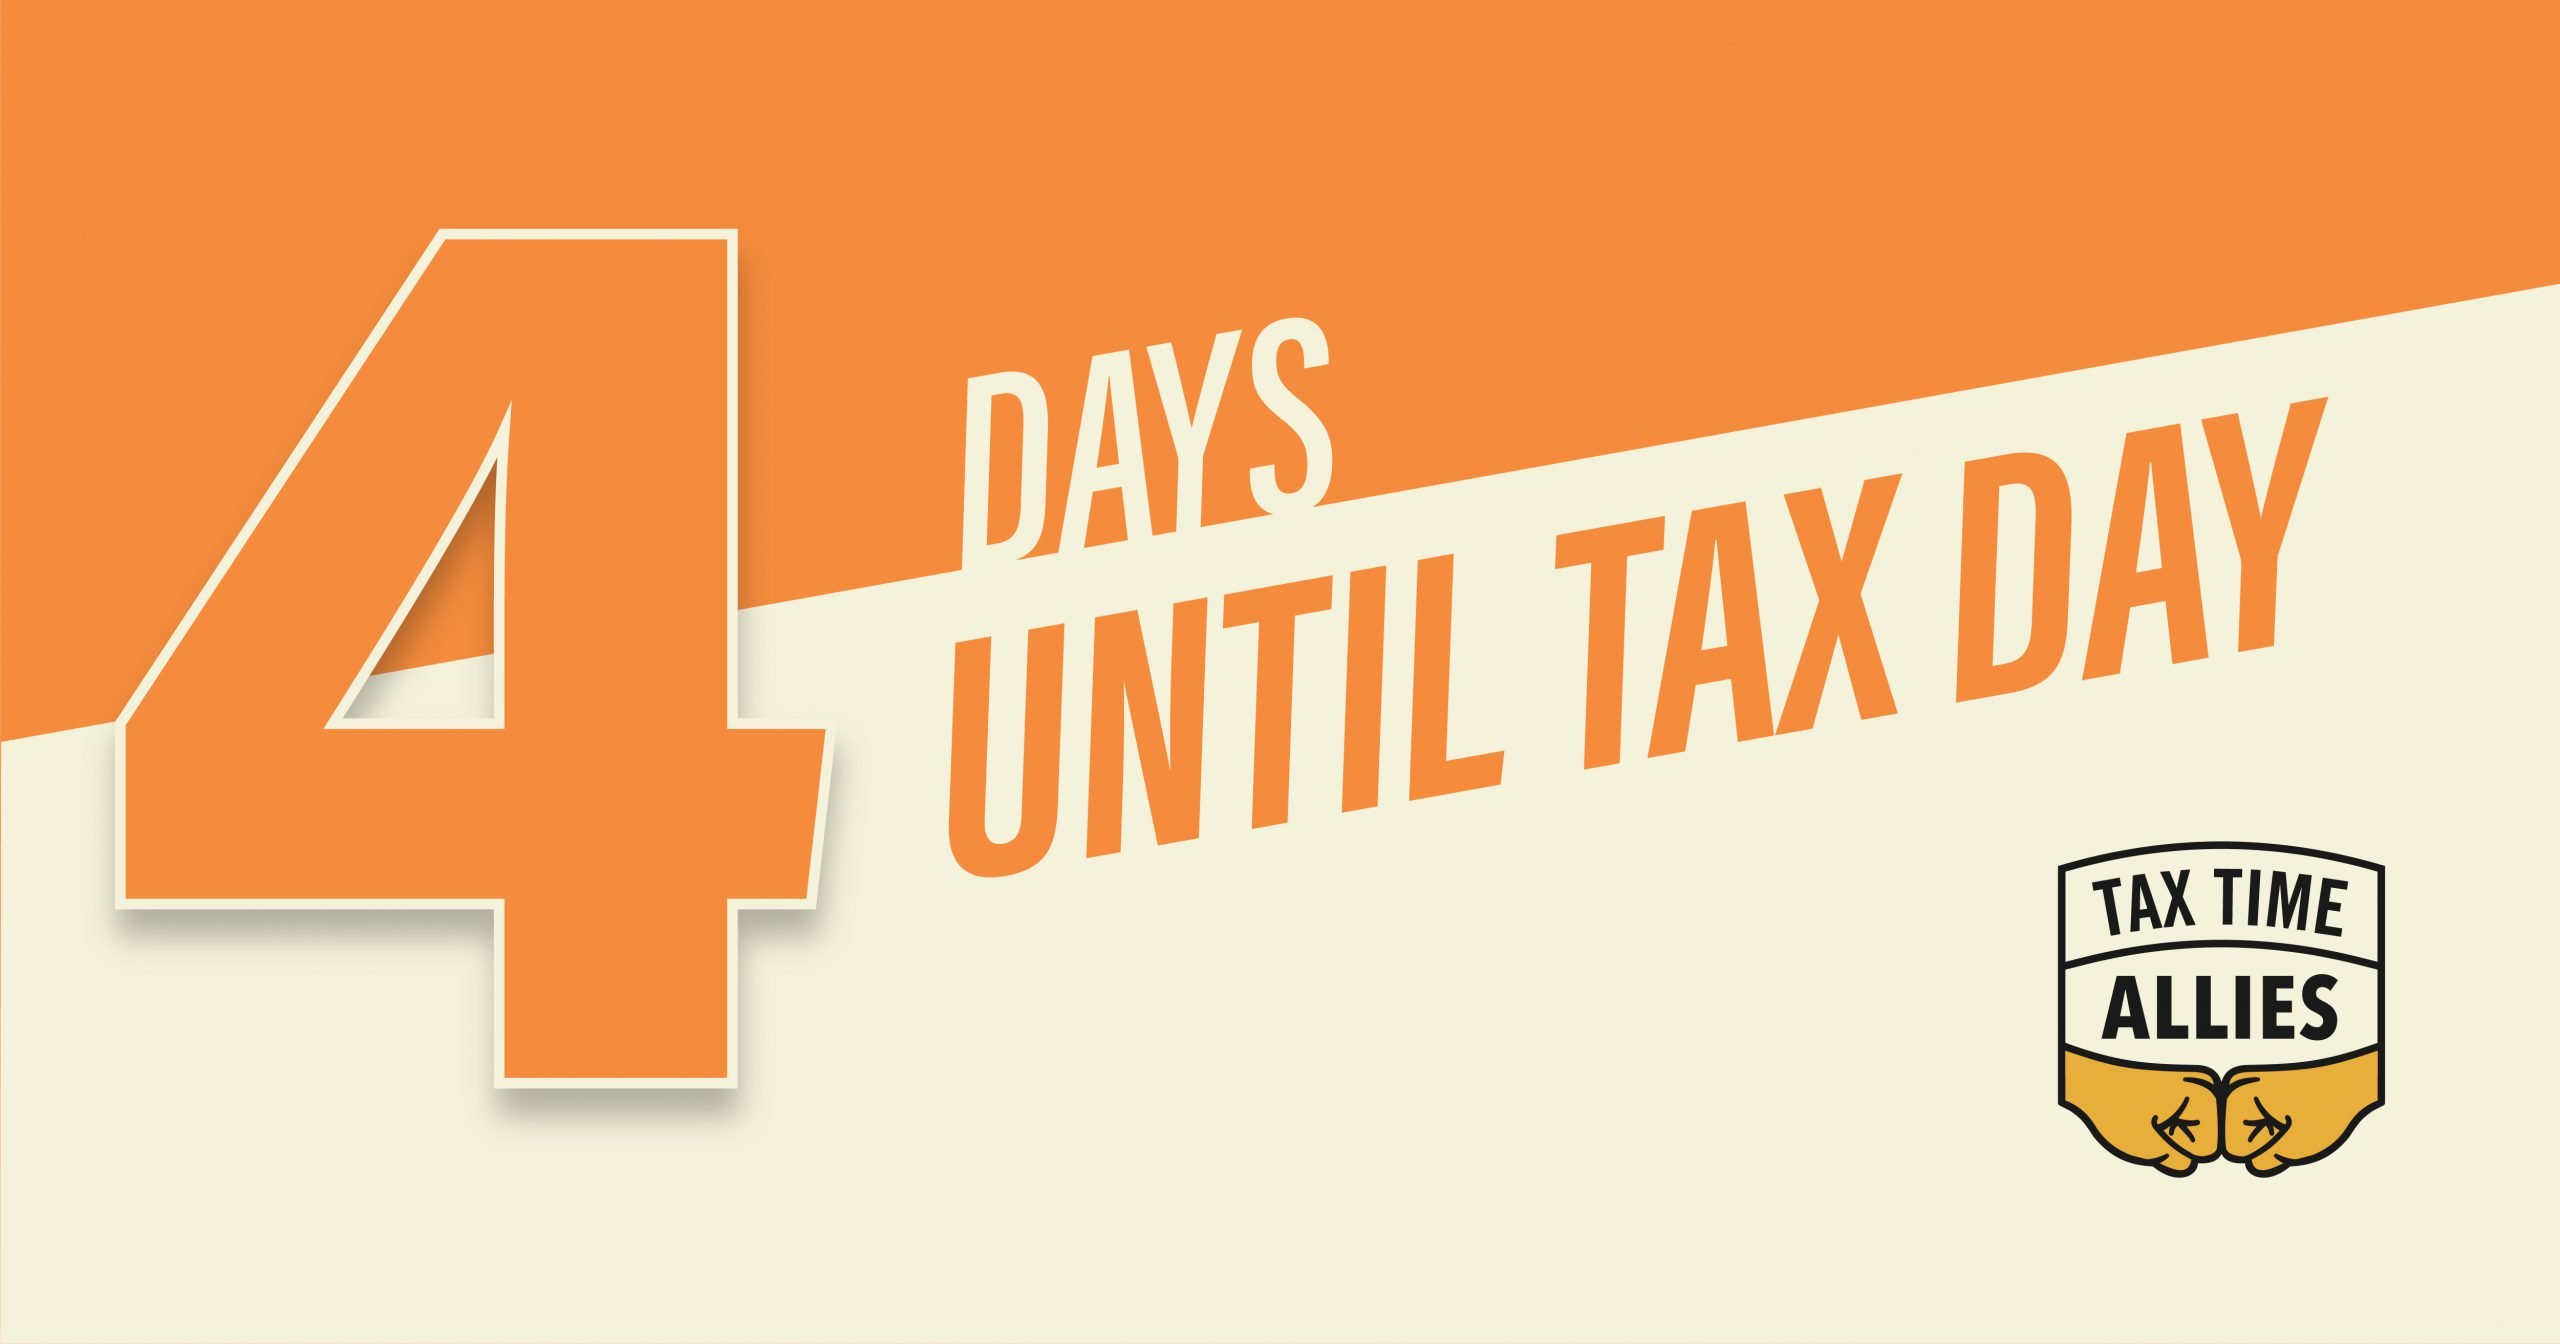 4 Days Until Tax Day